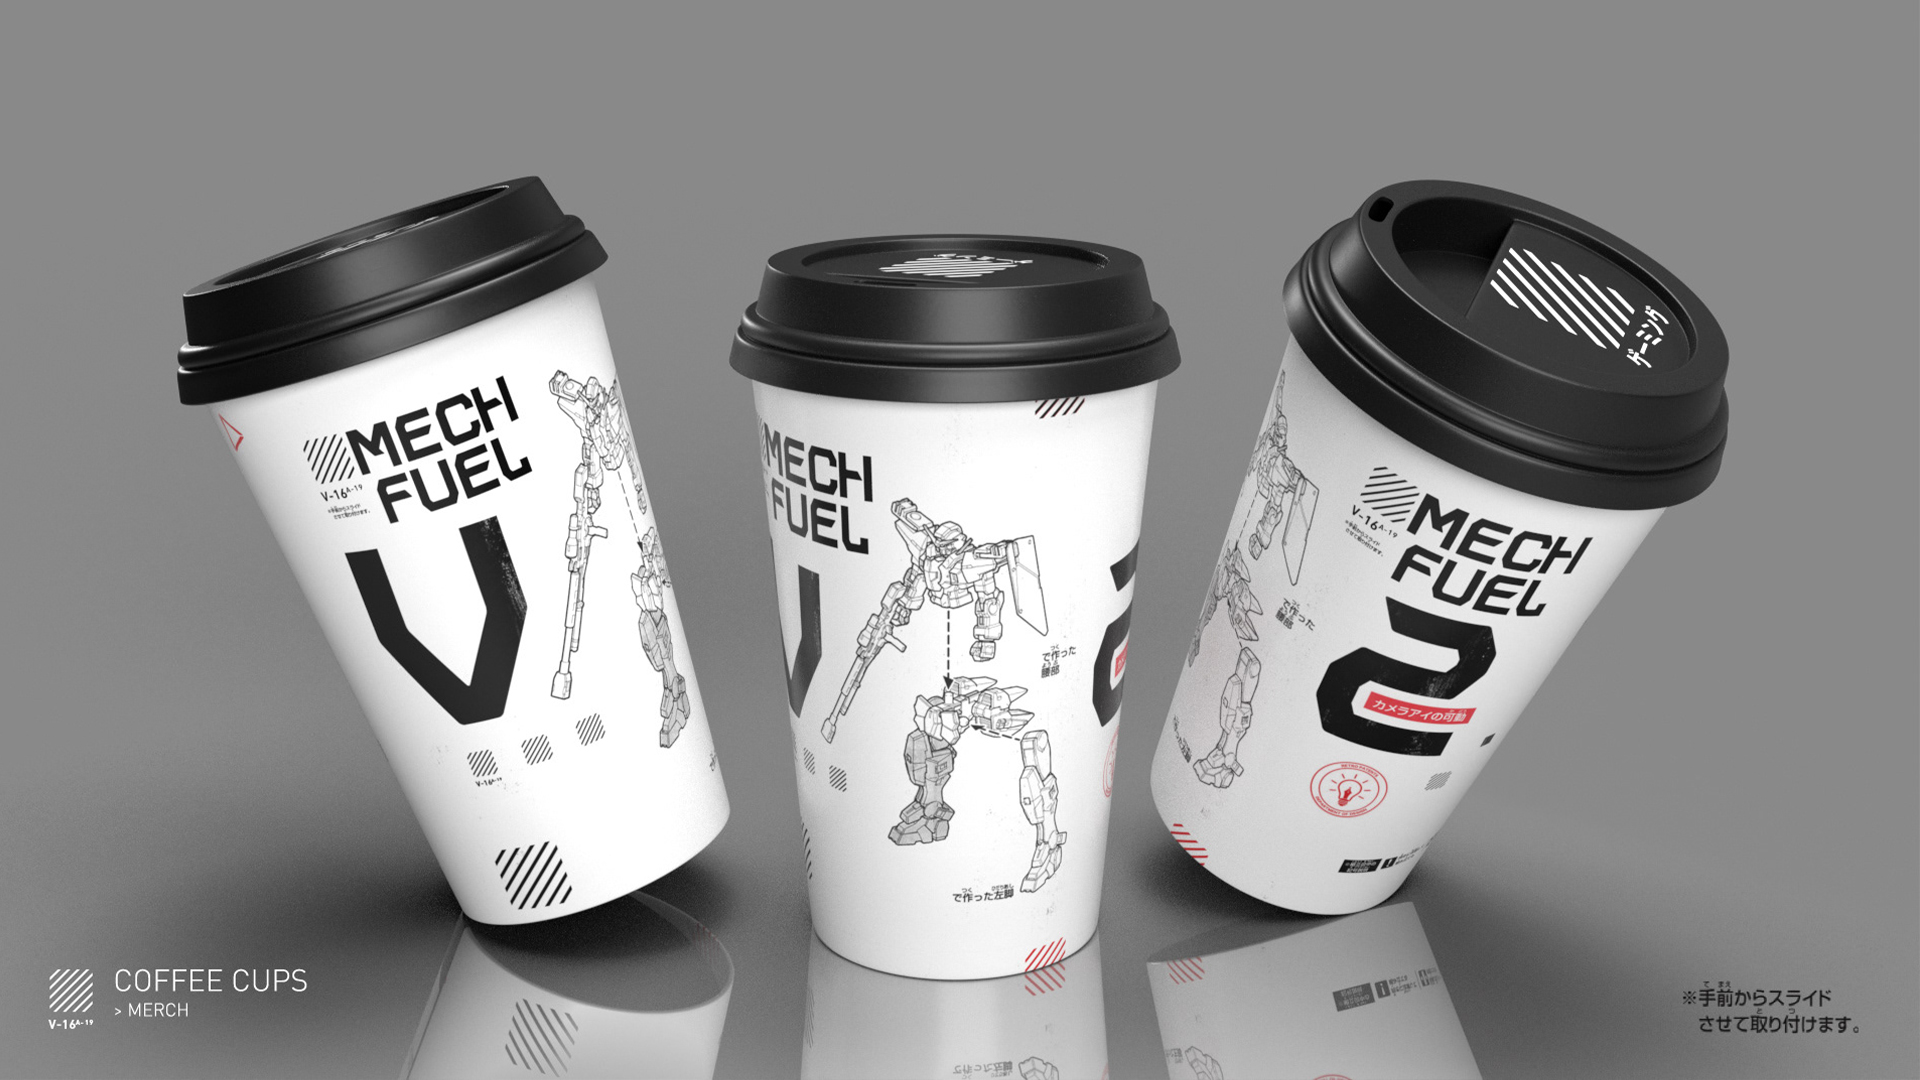 rAge expo 2019 coffee cup design